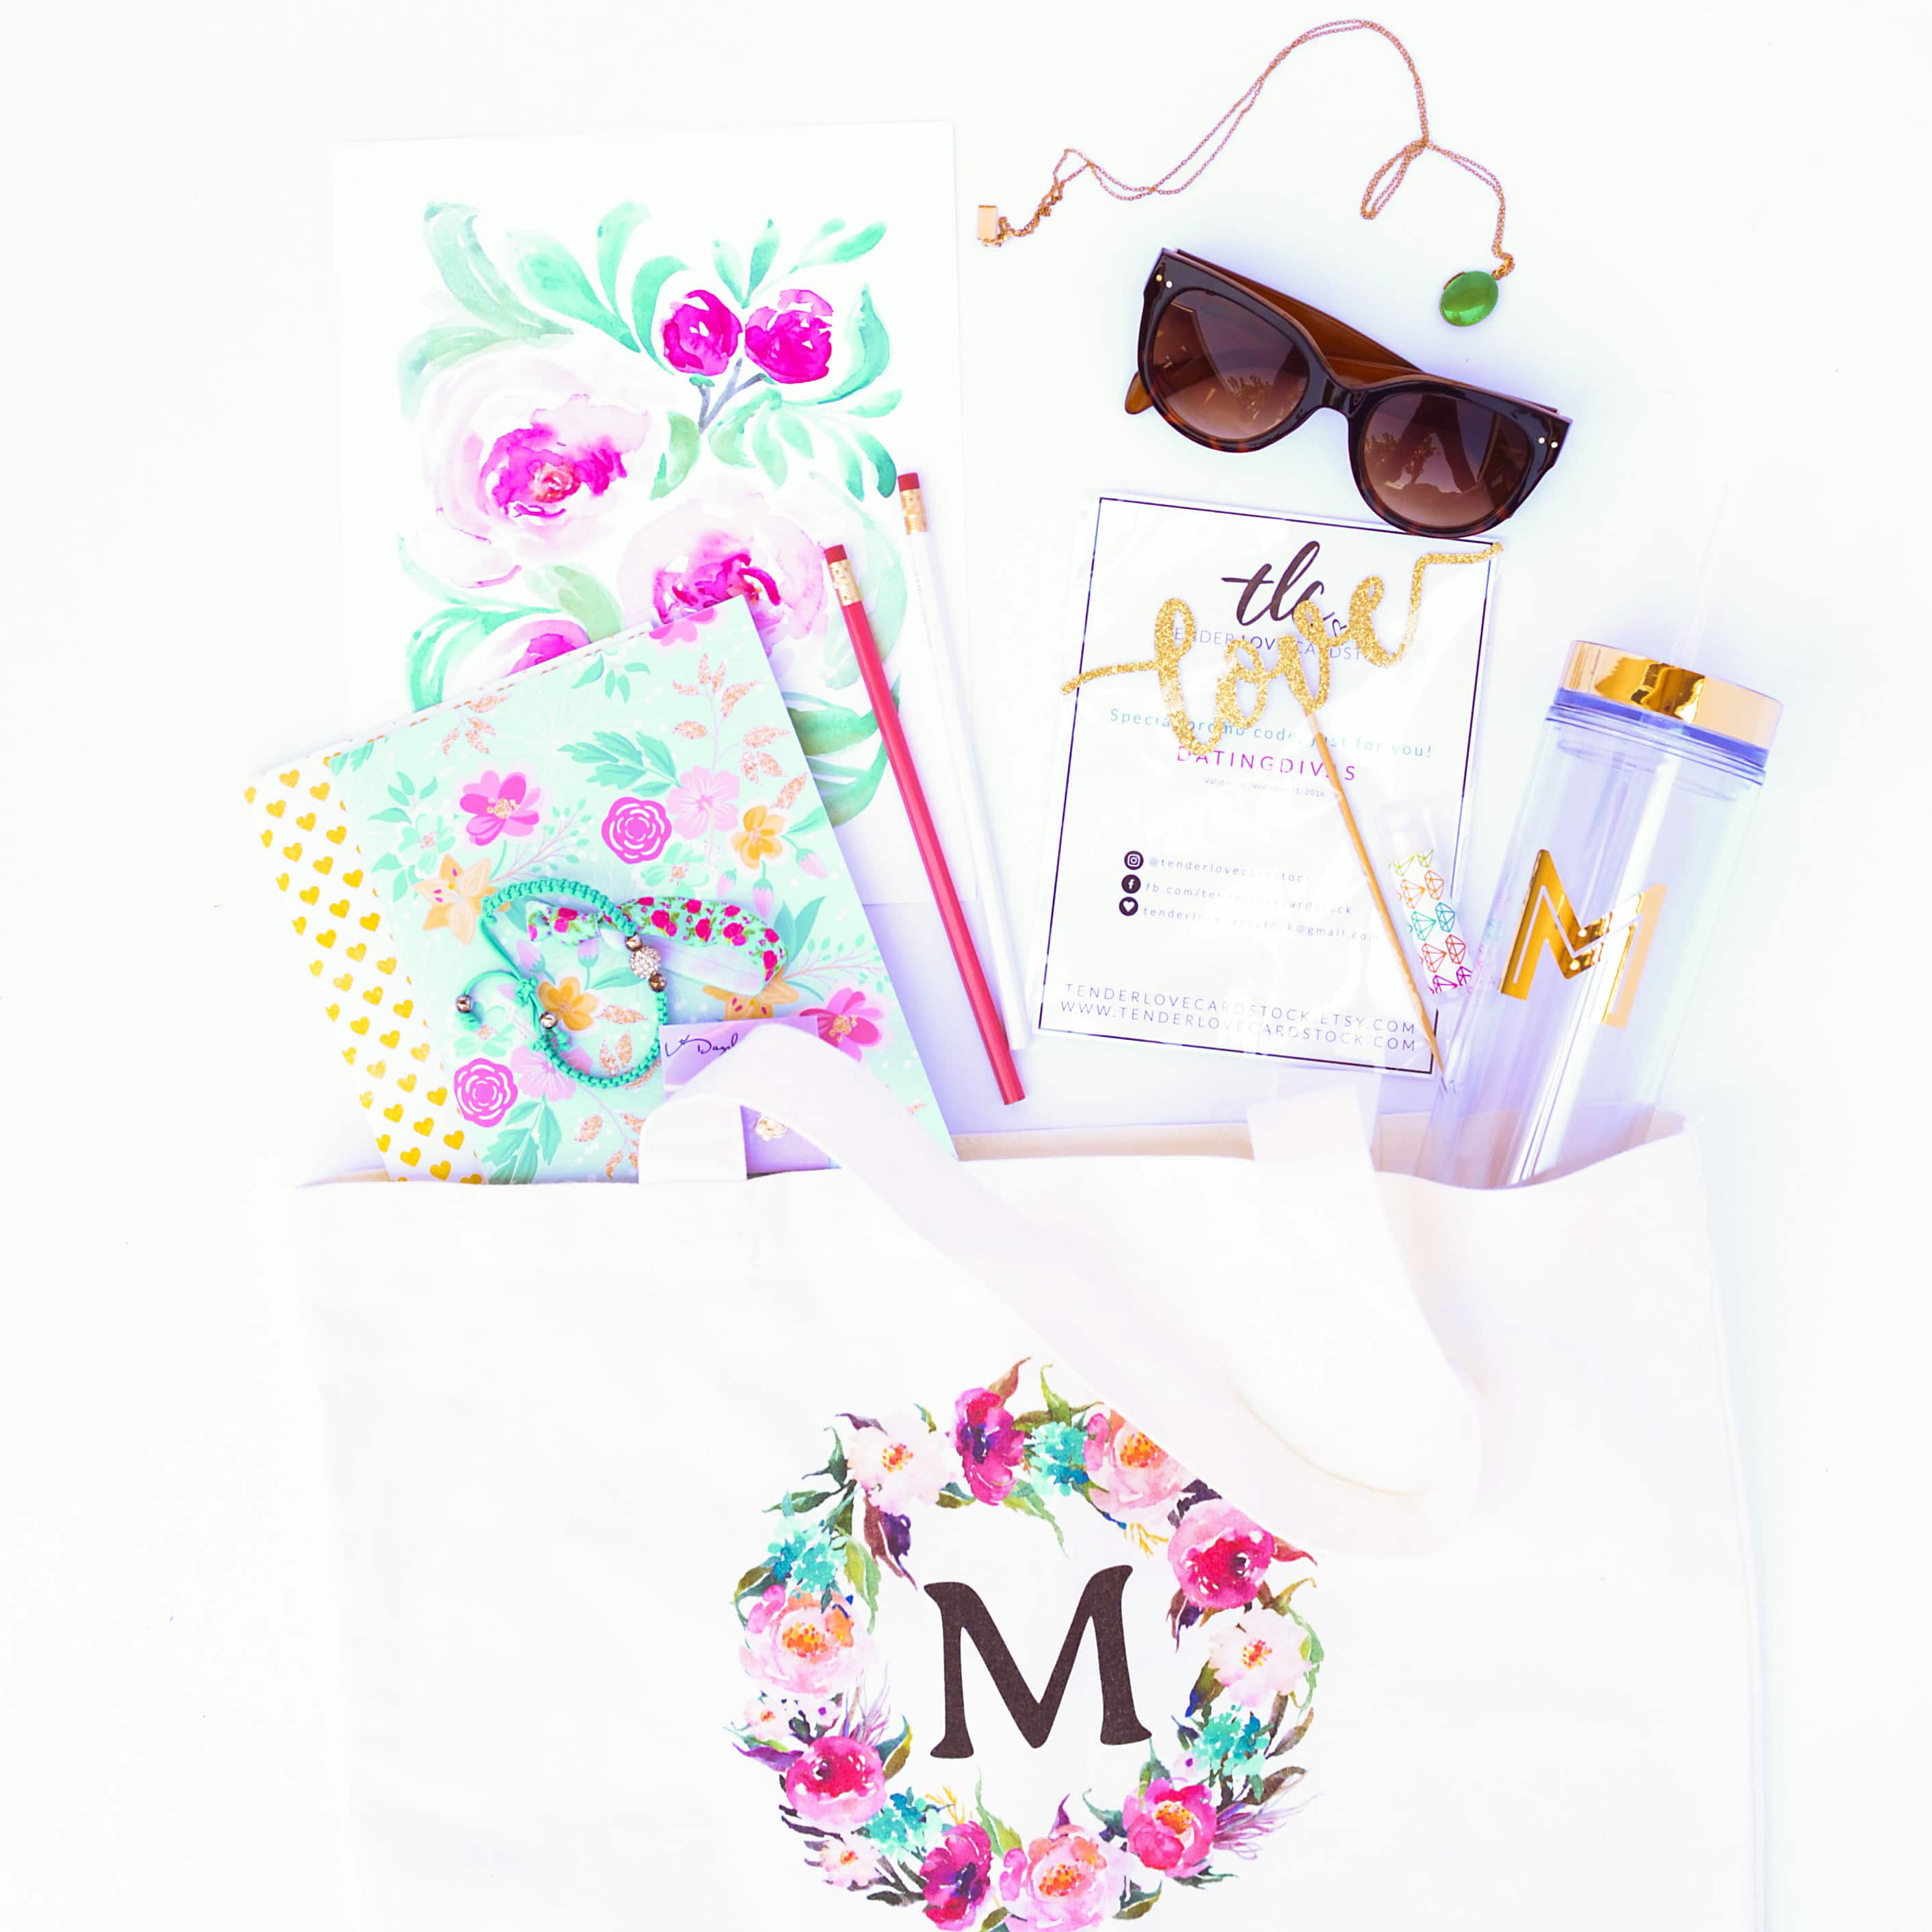 The dating divas gifts